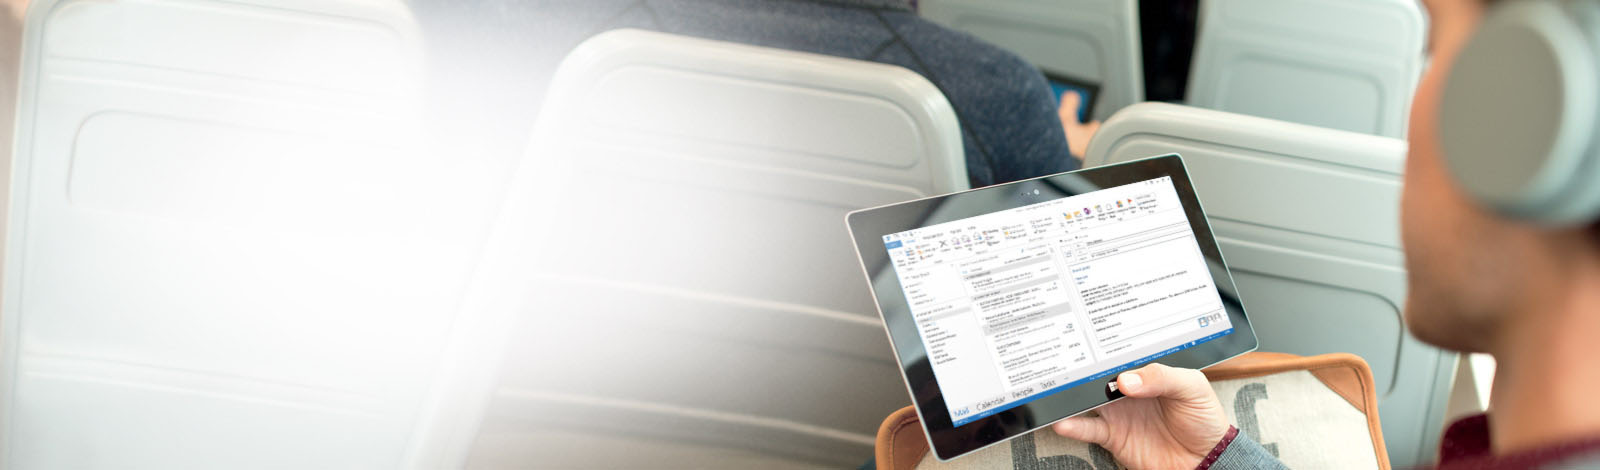 A man holding a tablet showing his inbox. Access email anywhere with Office 365.